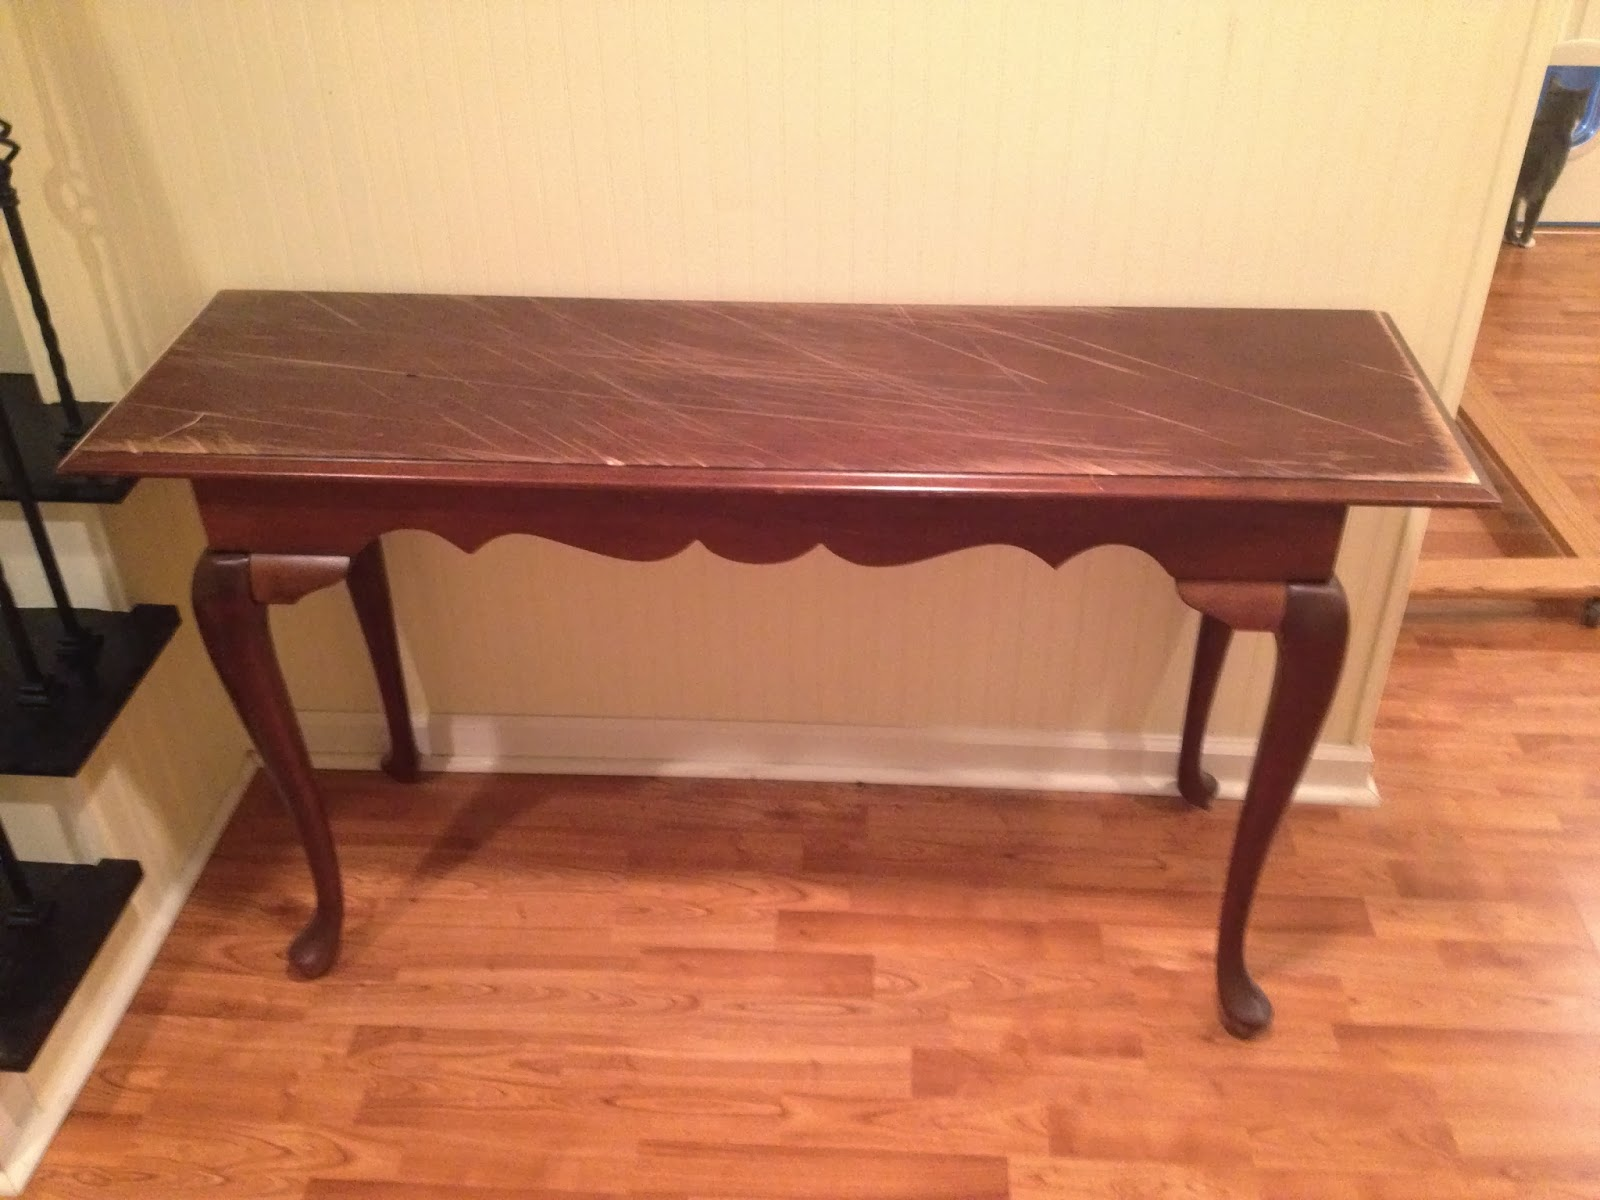 Between the Rafters Sofa Table Refurb